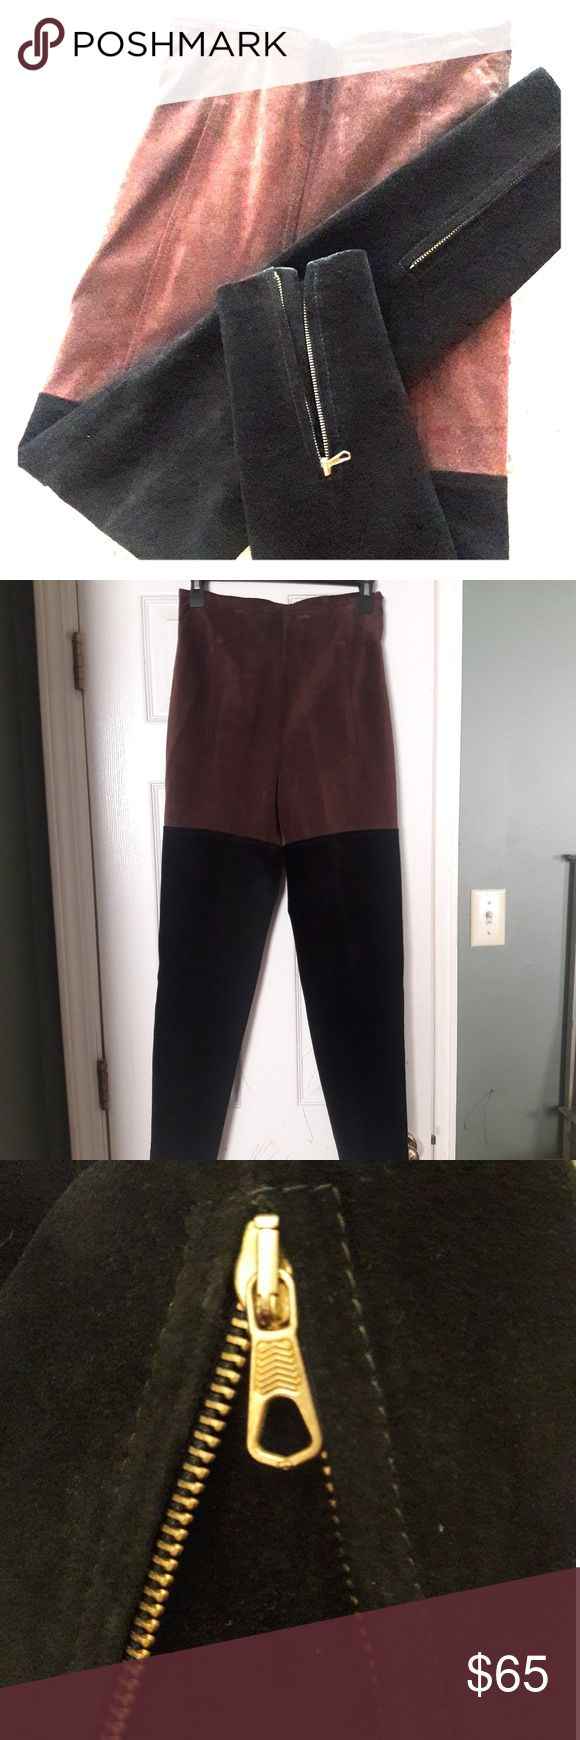 """Vera Pelle vintage high waisted leather trousers This is a really interesting piece. Two toned leather pants, ultra high waisted! The cuffs have a zippered split that opens to help you """"get your feet through"""", can be worn as a boot cut or skinny silhouette. They zip closed at the side. These are form fitting, no stretch at all! I have included as many measurements as I could think to take. If you have any questions please don't hesitate to ask! Highest waist: 26"""" Front rise: 12"""" Inseam: 28…"""